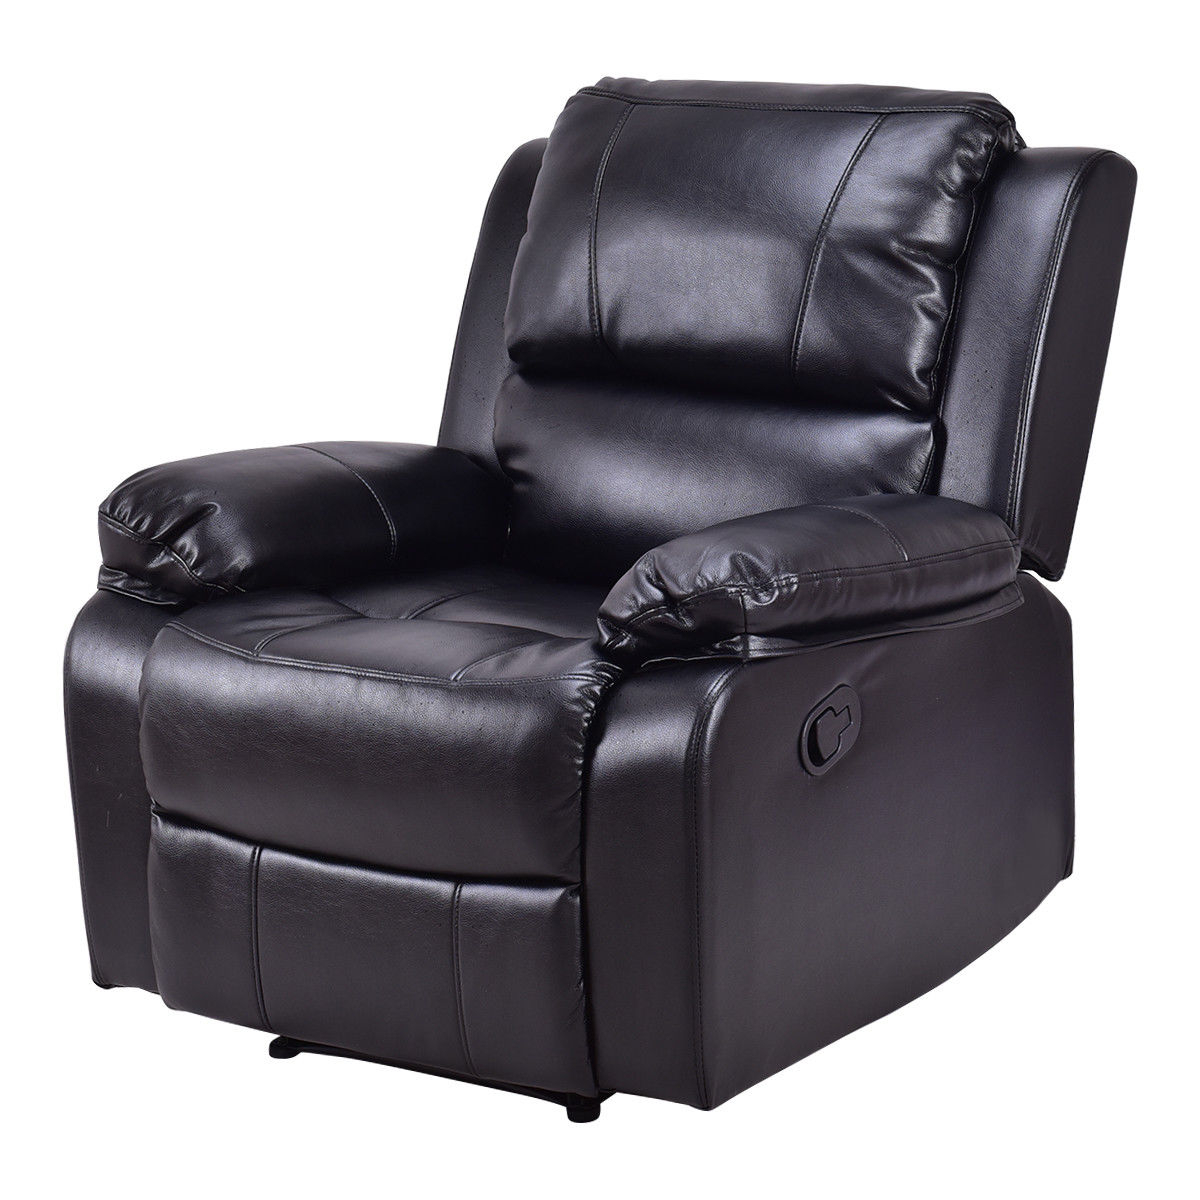 Famous Recliner Sofa Chairs Throughout Costway: Costway Manual Recliner Sofa Lounge Chair Pu Leather Home (View 4 of 20)